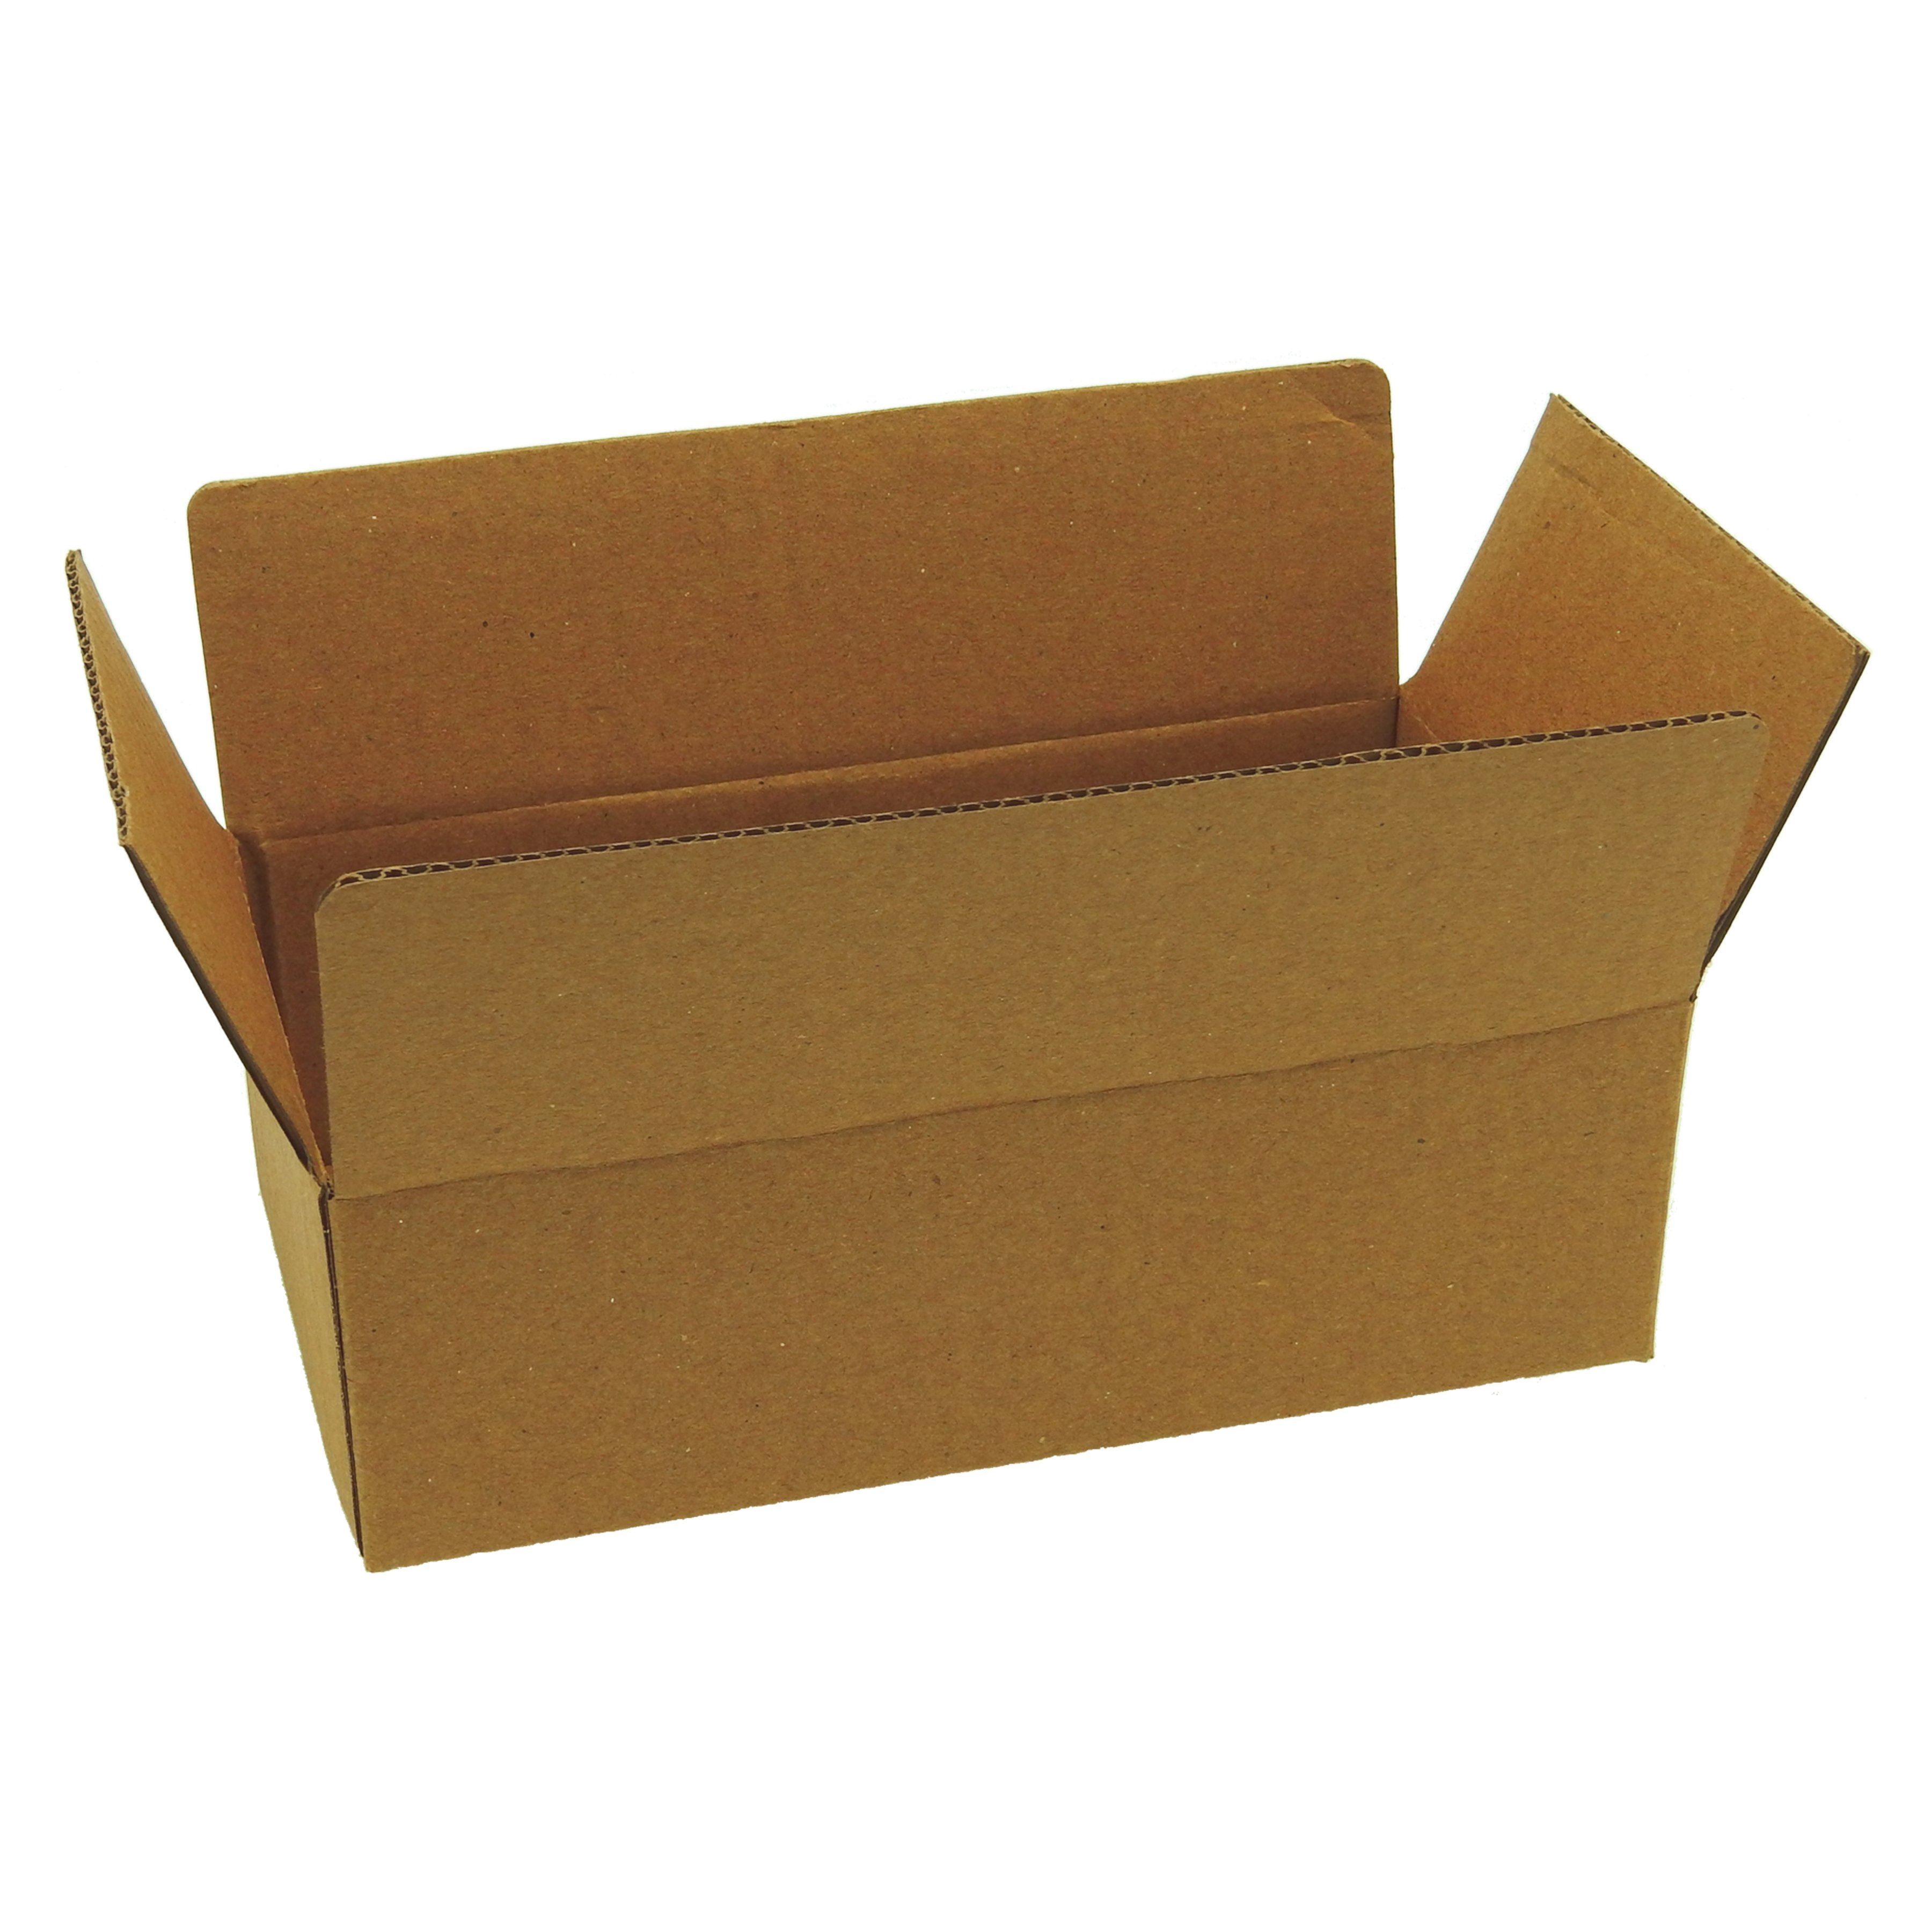 100 8x4.5x2.5 Corrugated Cardboard Shipping Mailing Packing Moving Boxes Box Carton